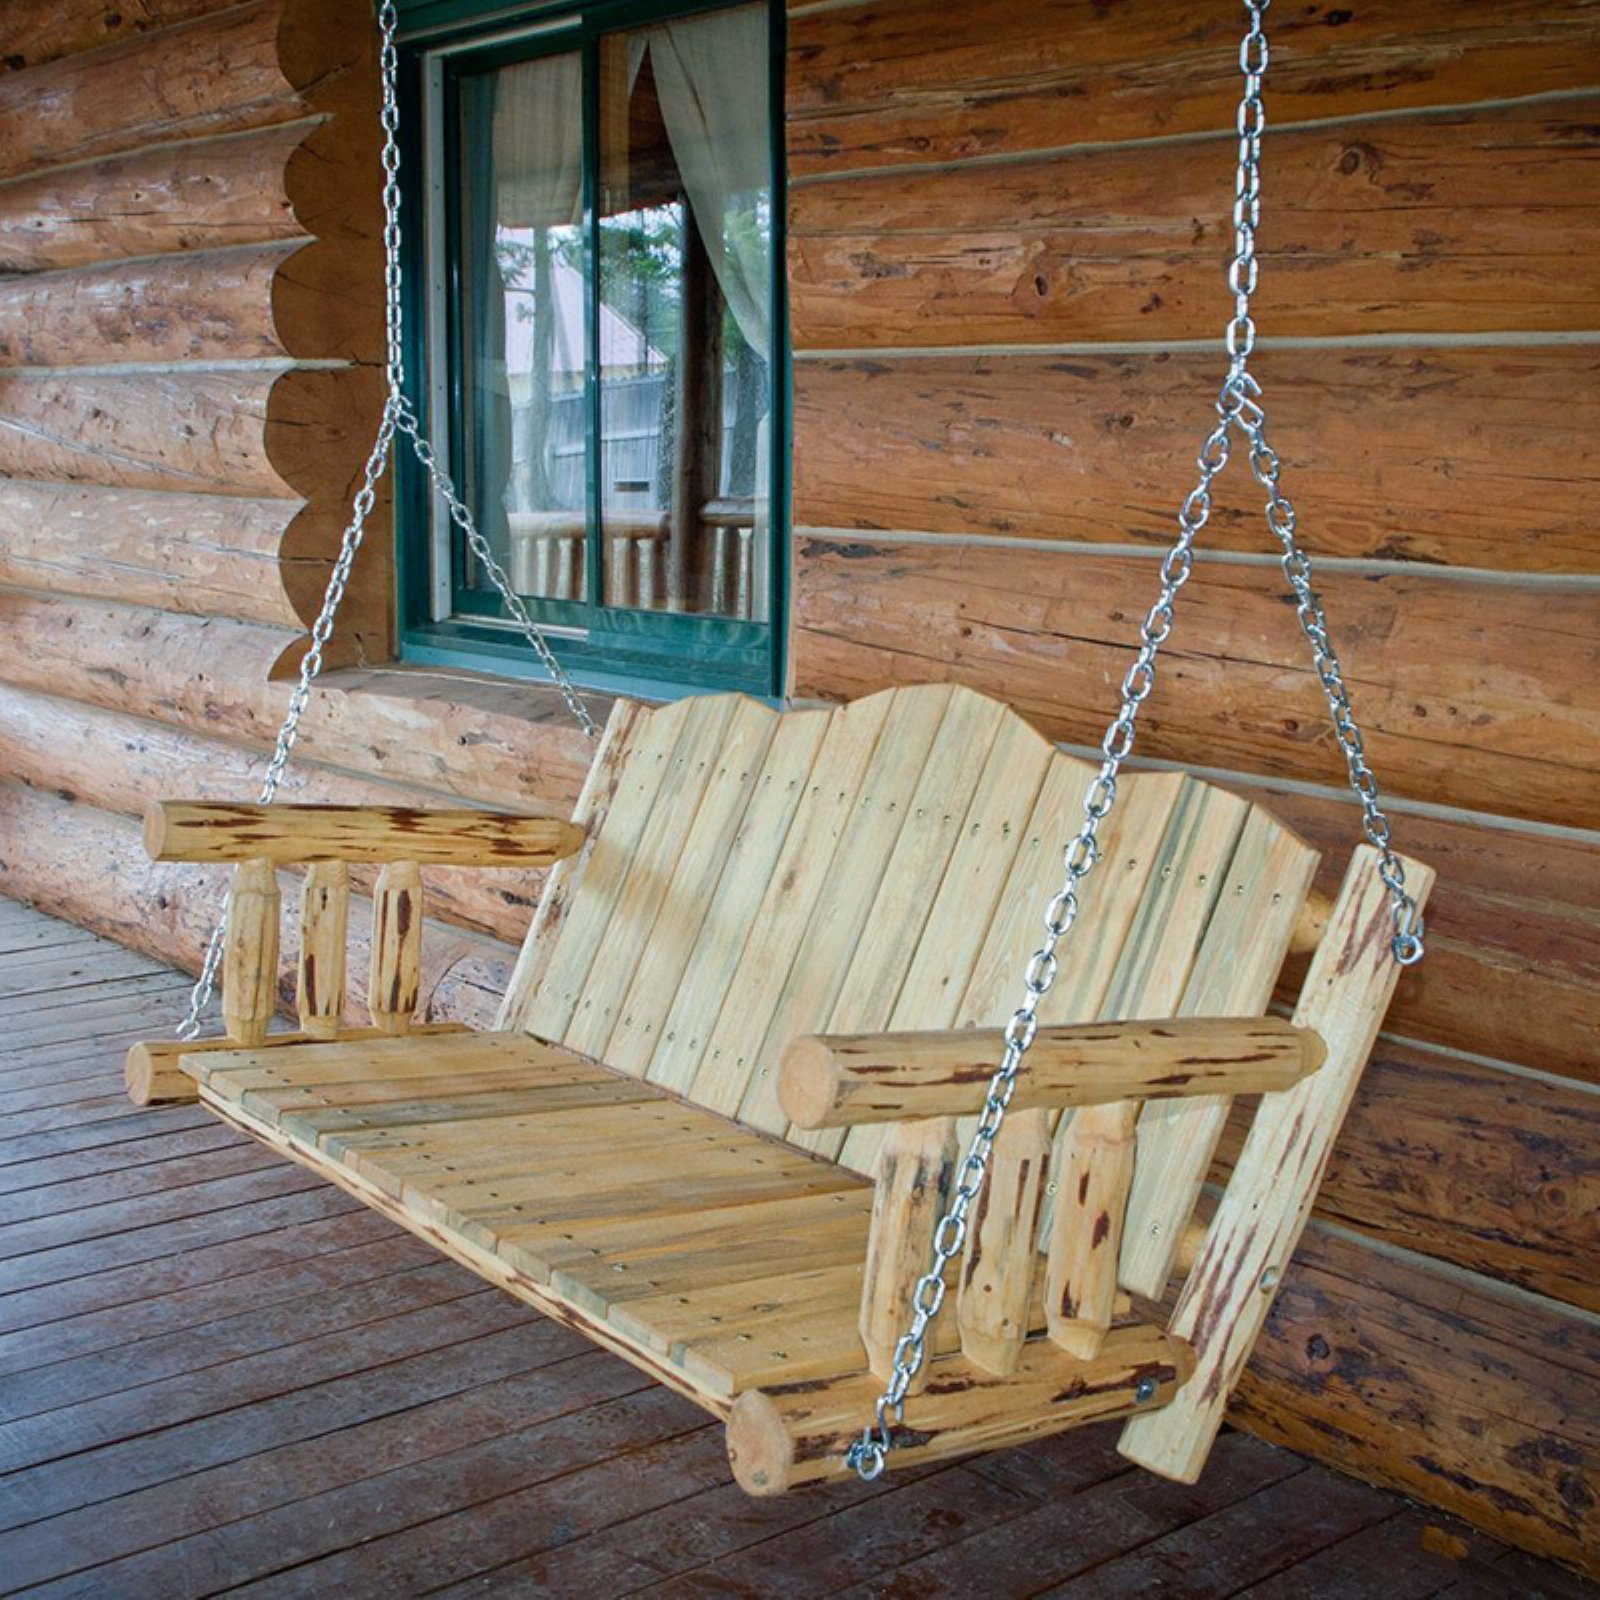 Montana Woodworks 4 ft. Porch Swing with Chains by Porch Swings